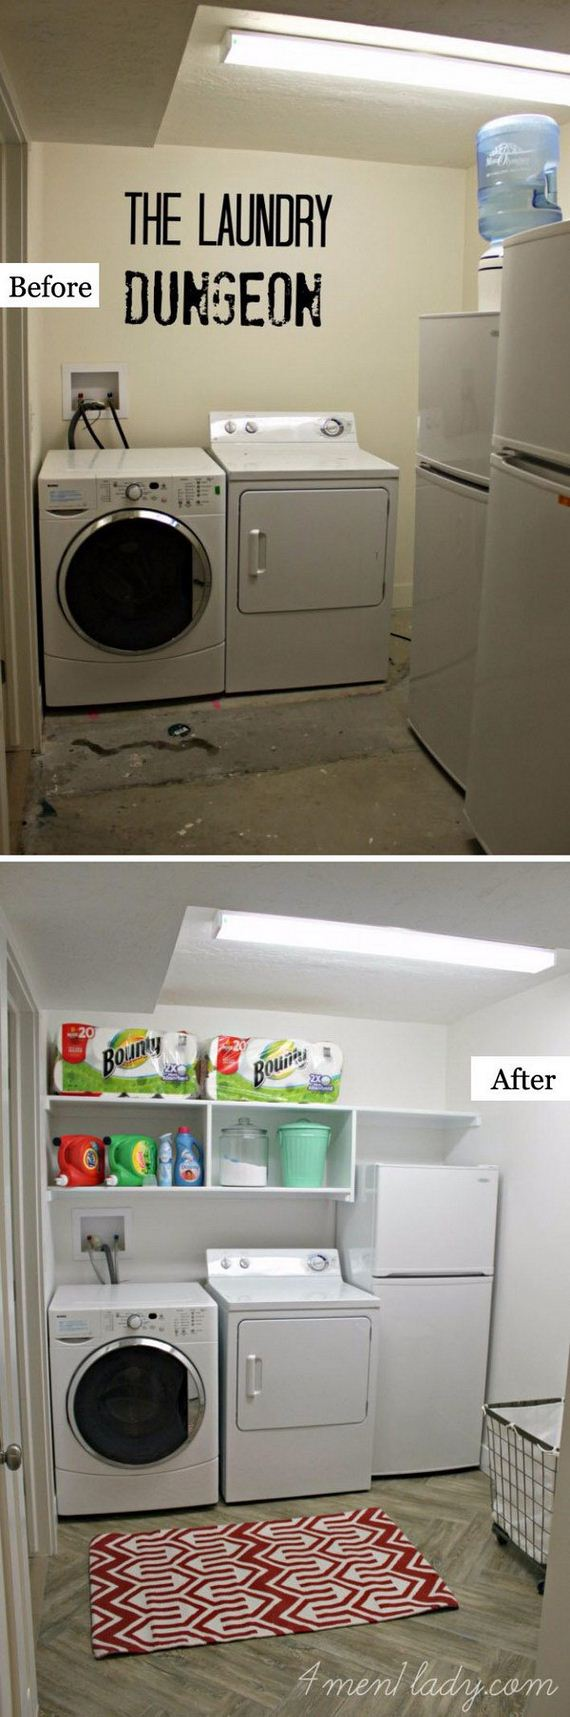 25-before-laundry-room